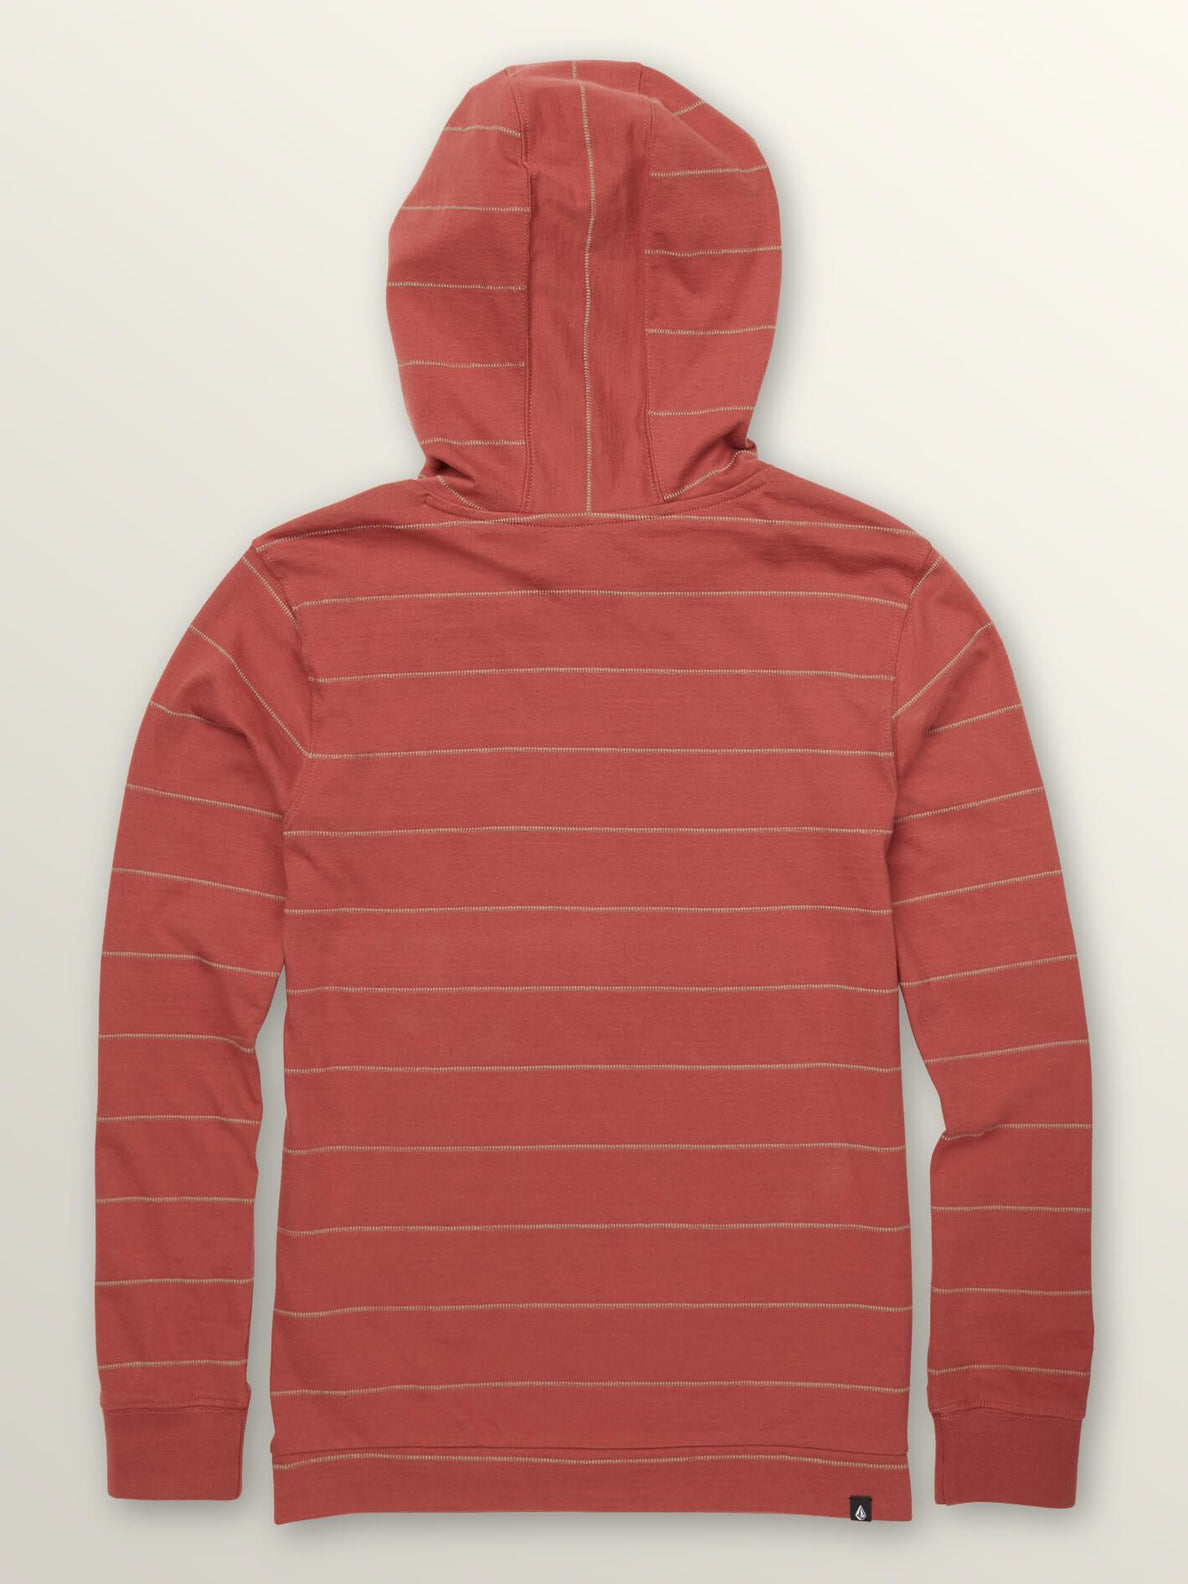 Big Boys Wallace Long Sleeve Hoodie In Dead Rose, Back View